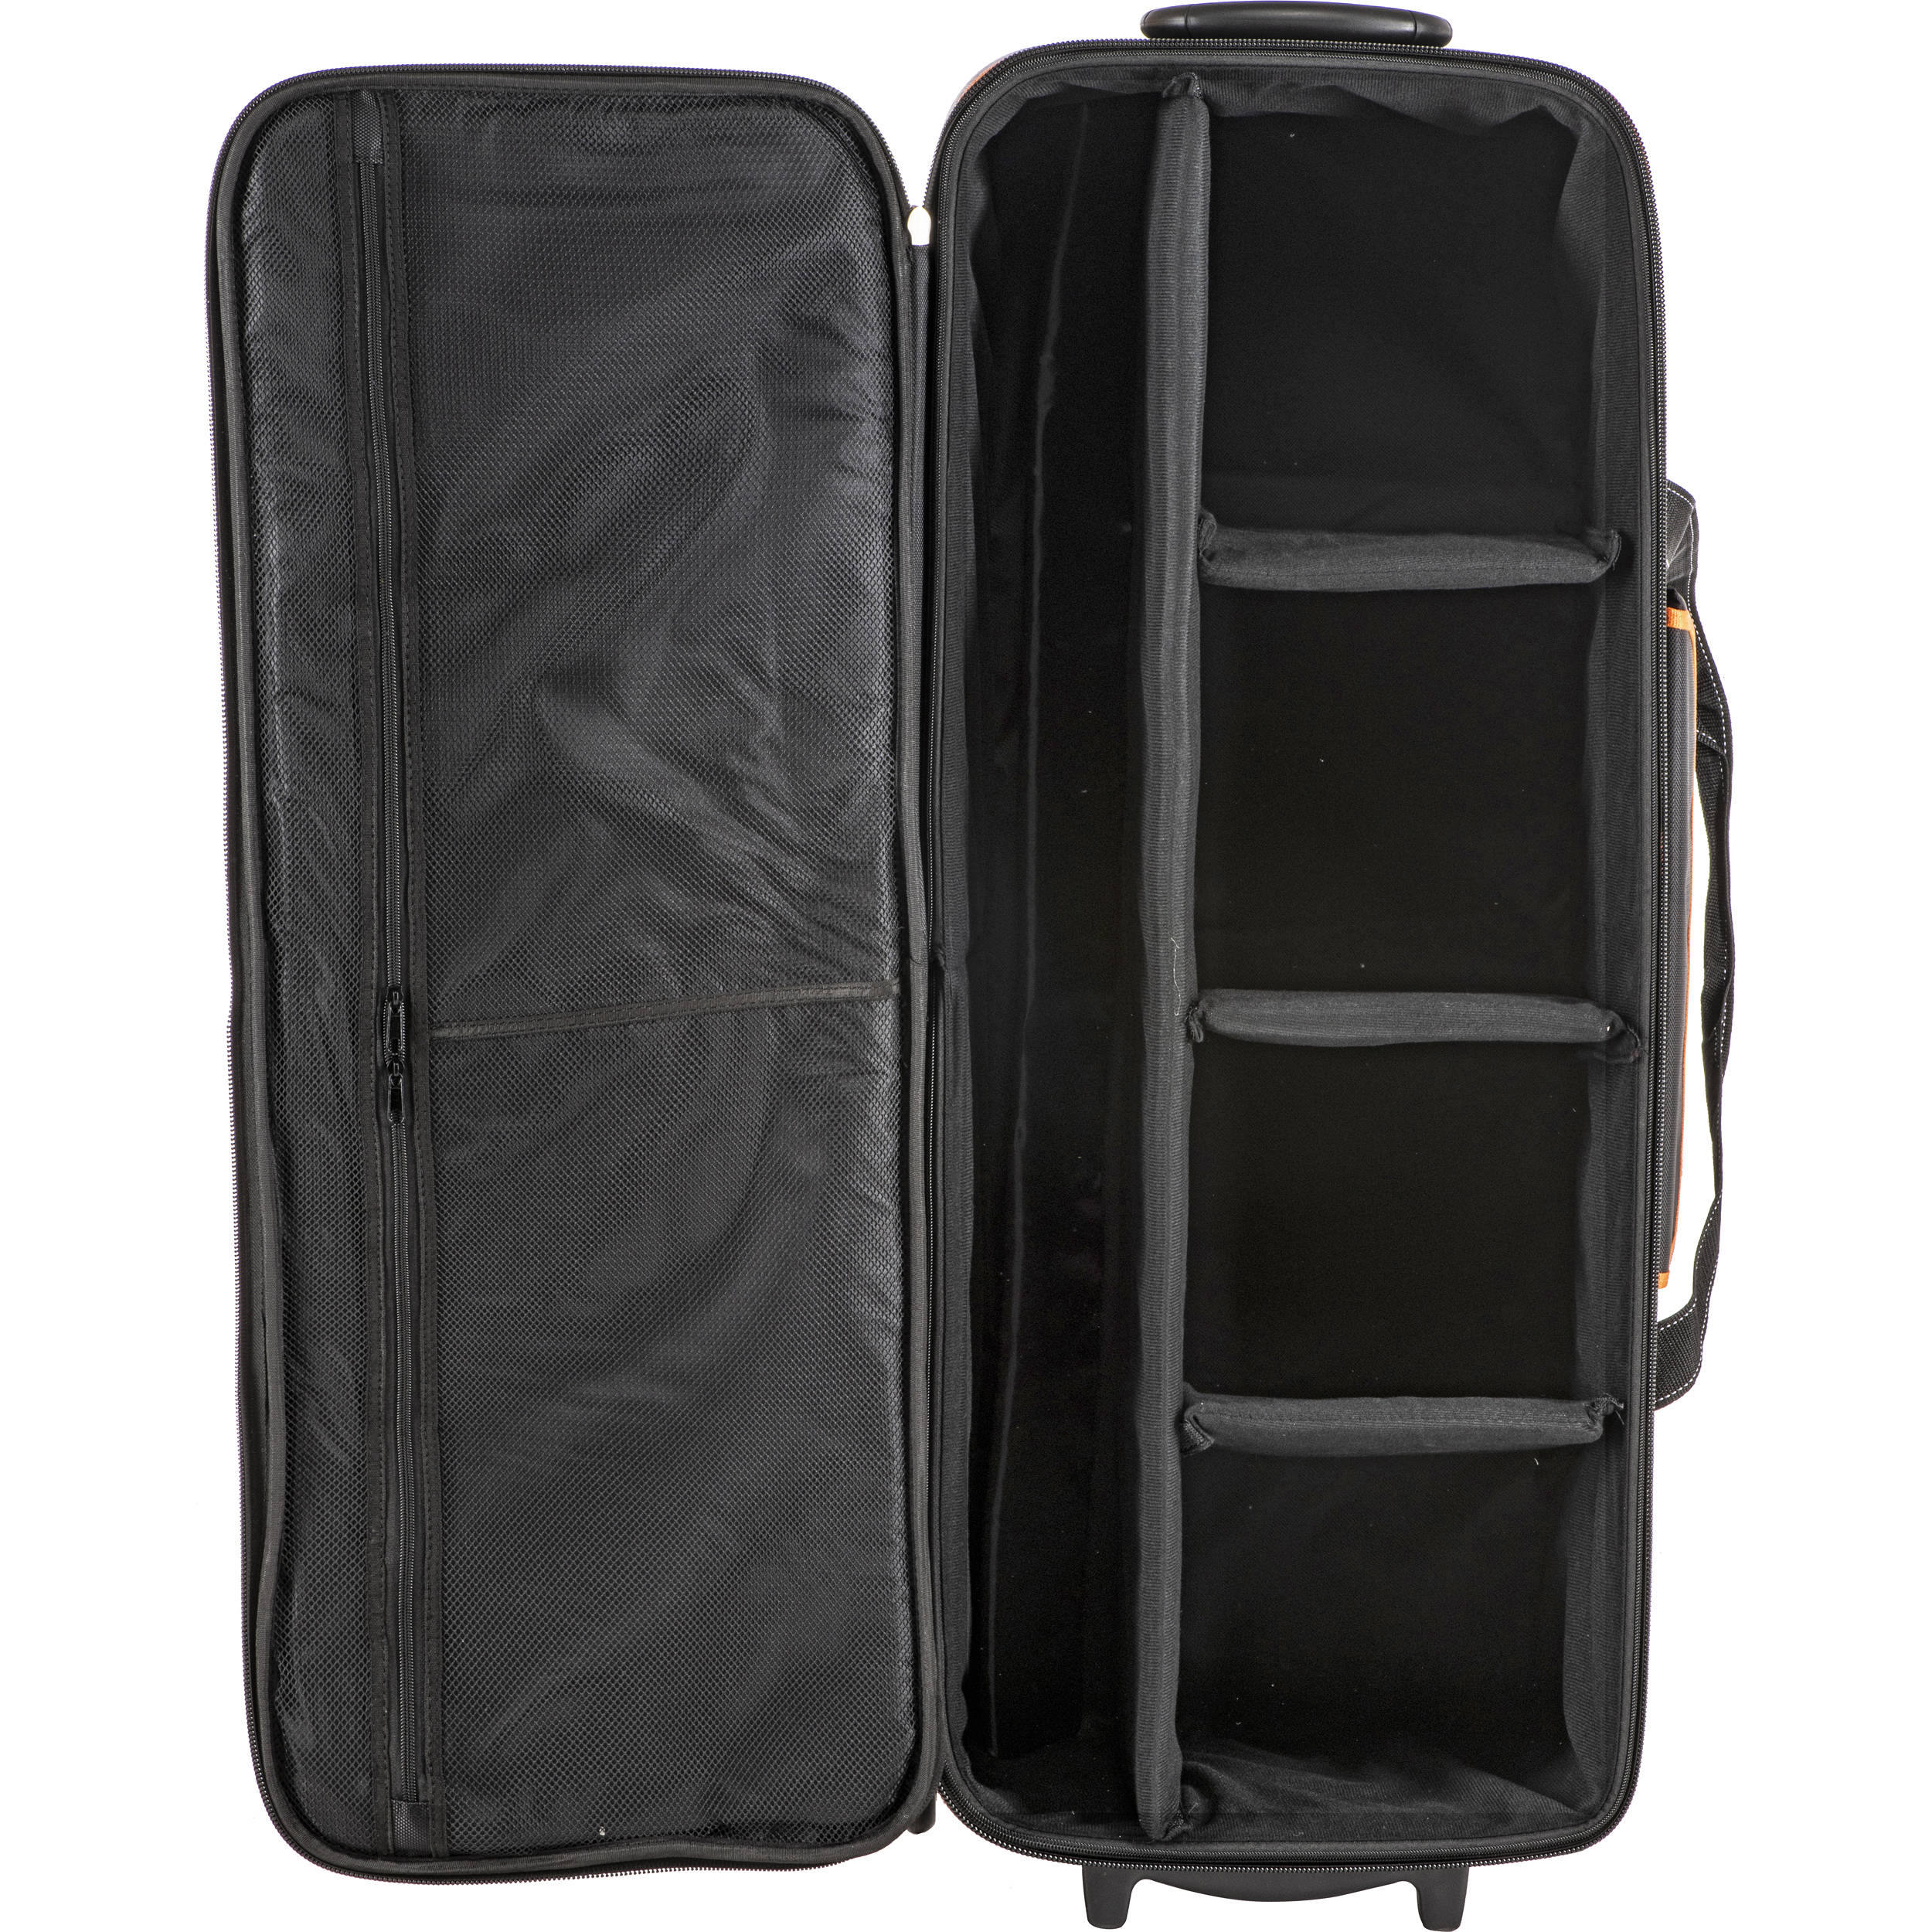 Ox Cb 06 Hard Carrying Case With Wheels